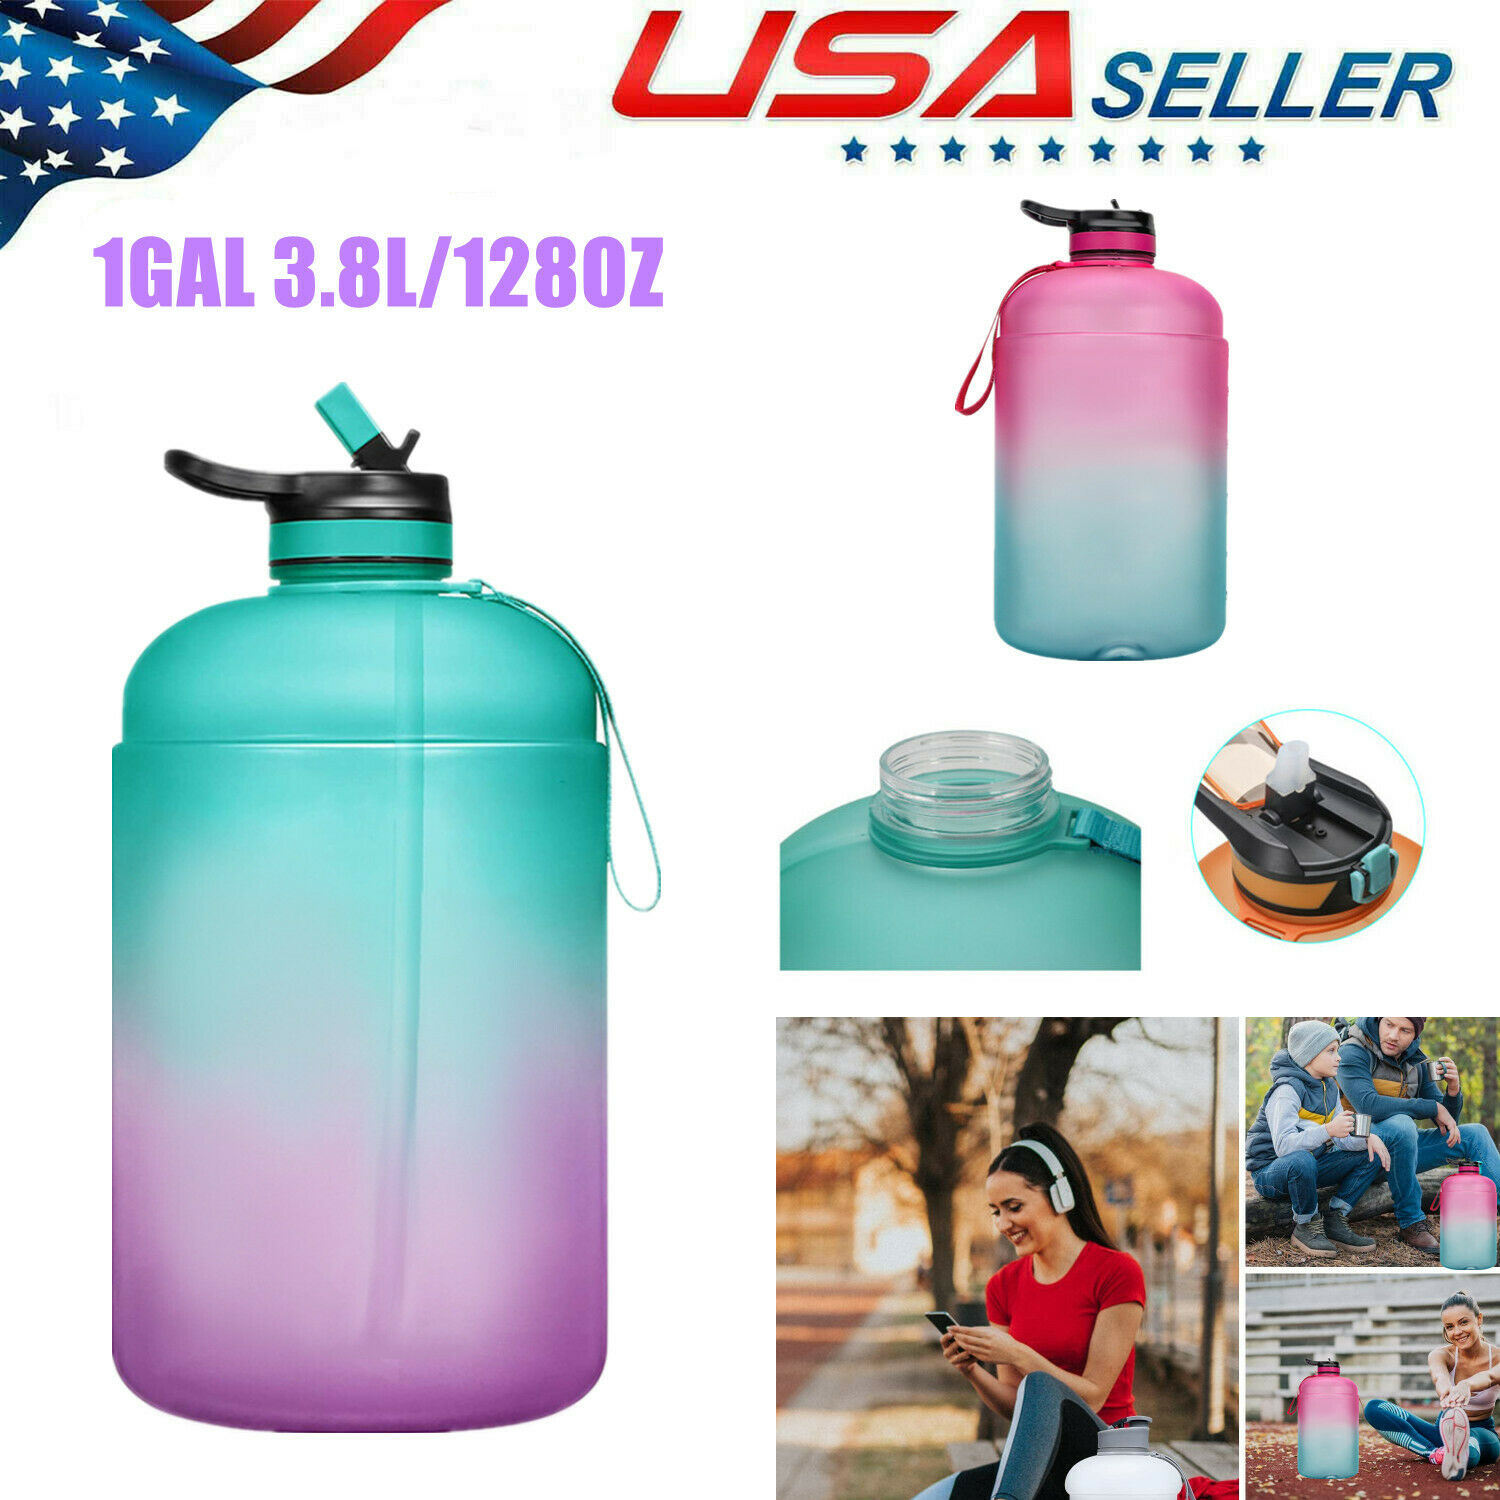 BPA Free Large Water Bottle green lid Details about  / 1 Gallon Water Bottle with Straw Lid